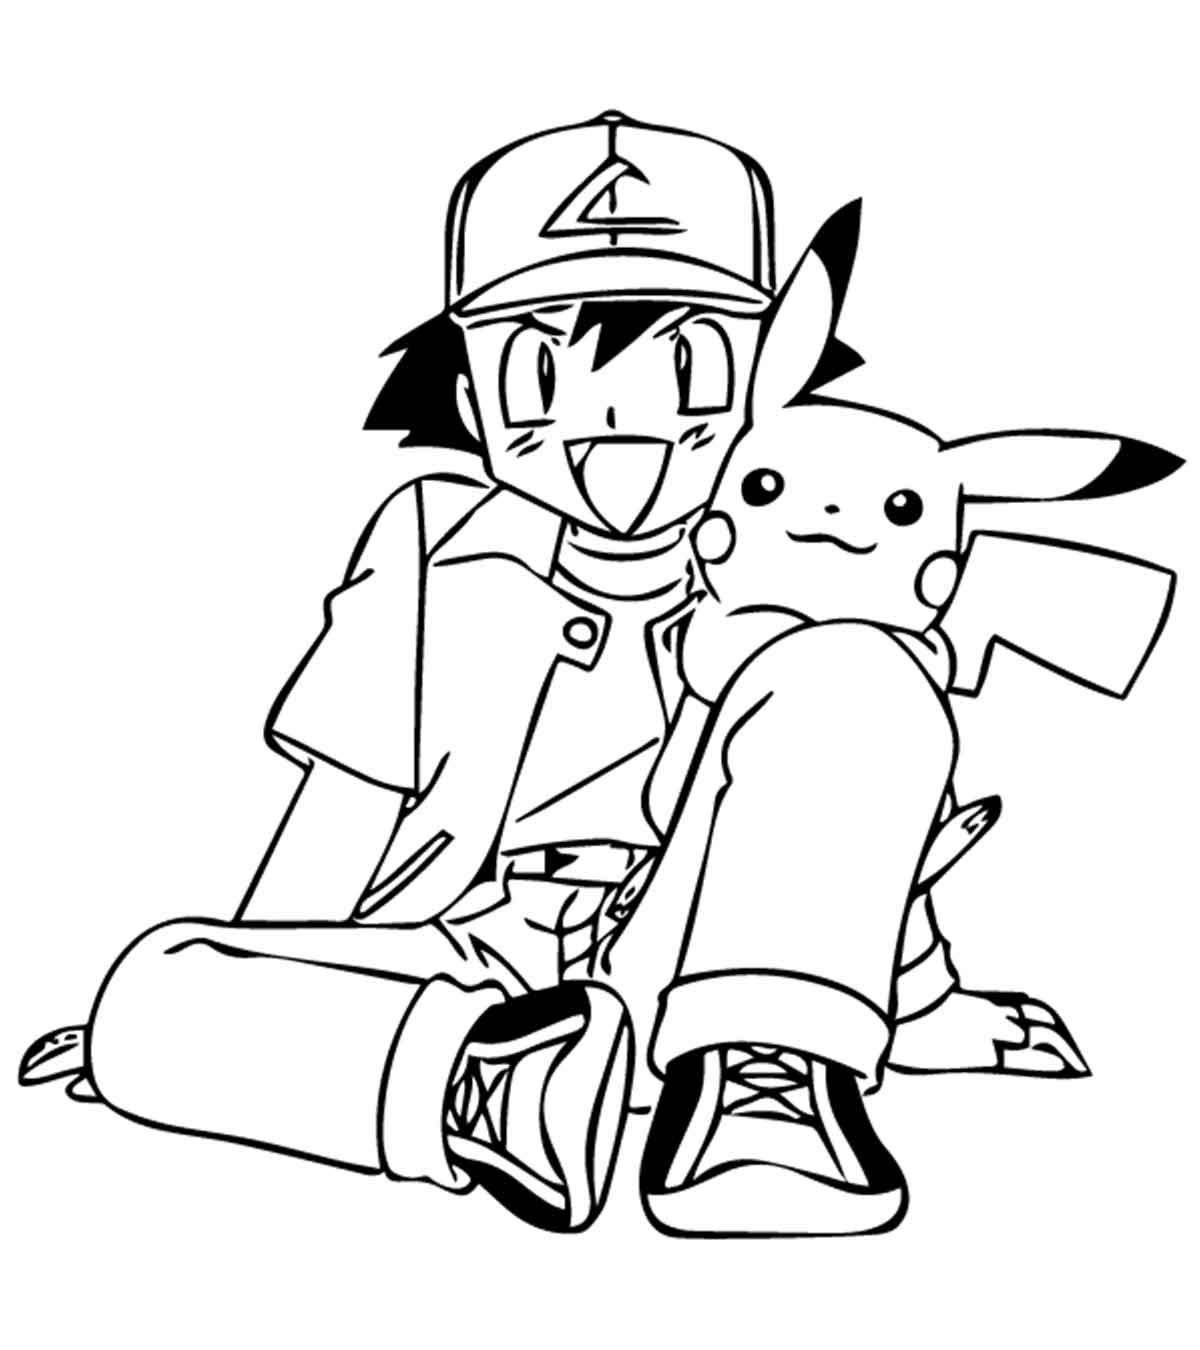 coloring pokemon pages pokemon coloring pages 30 free printable jpg pdf coloring pokemon pages